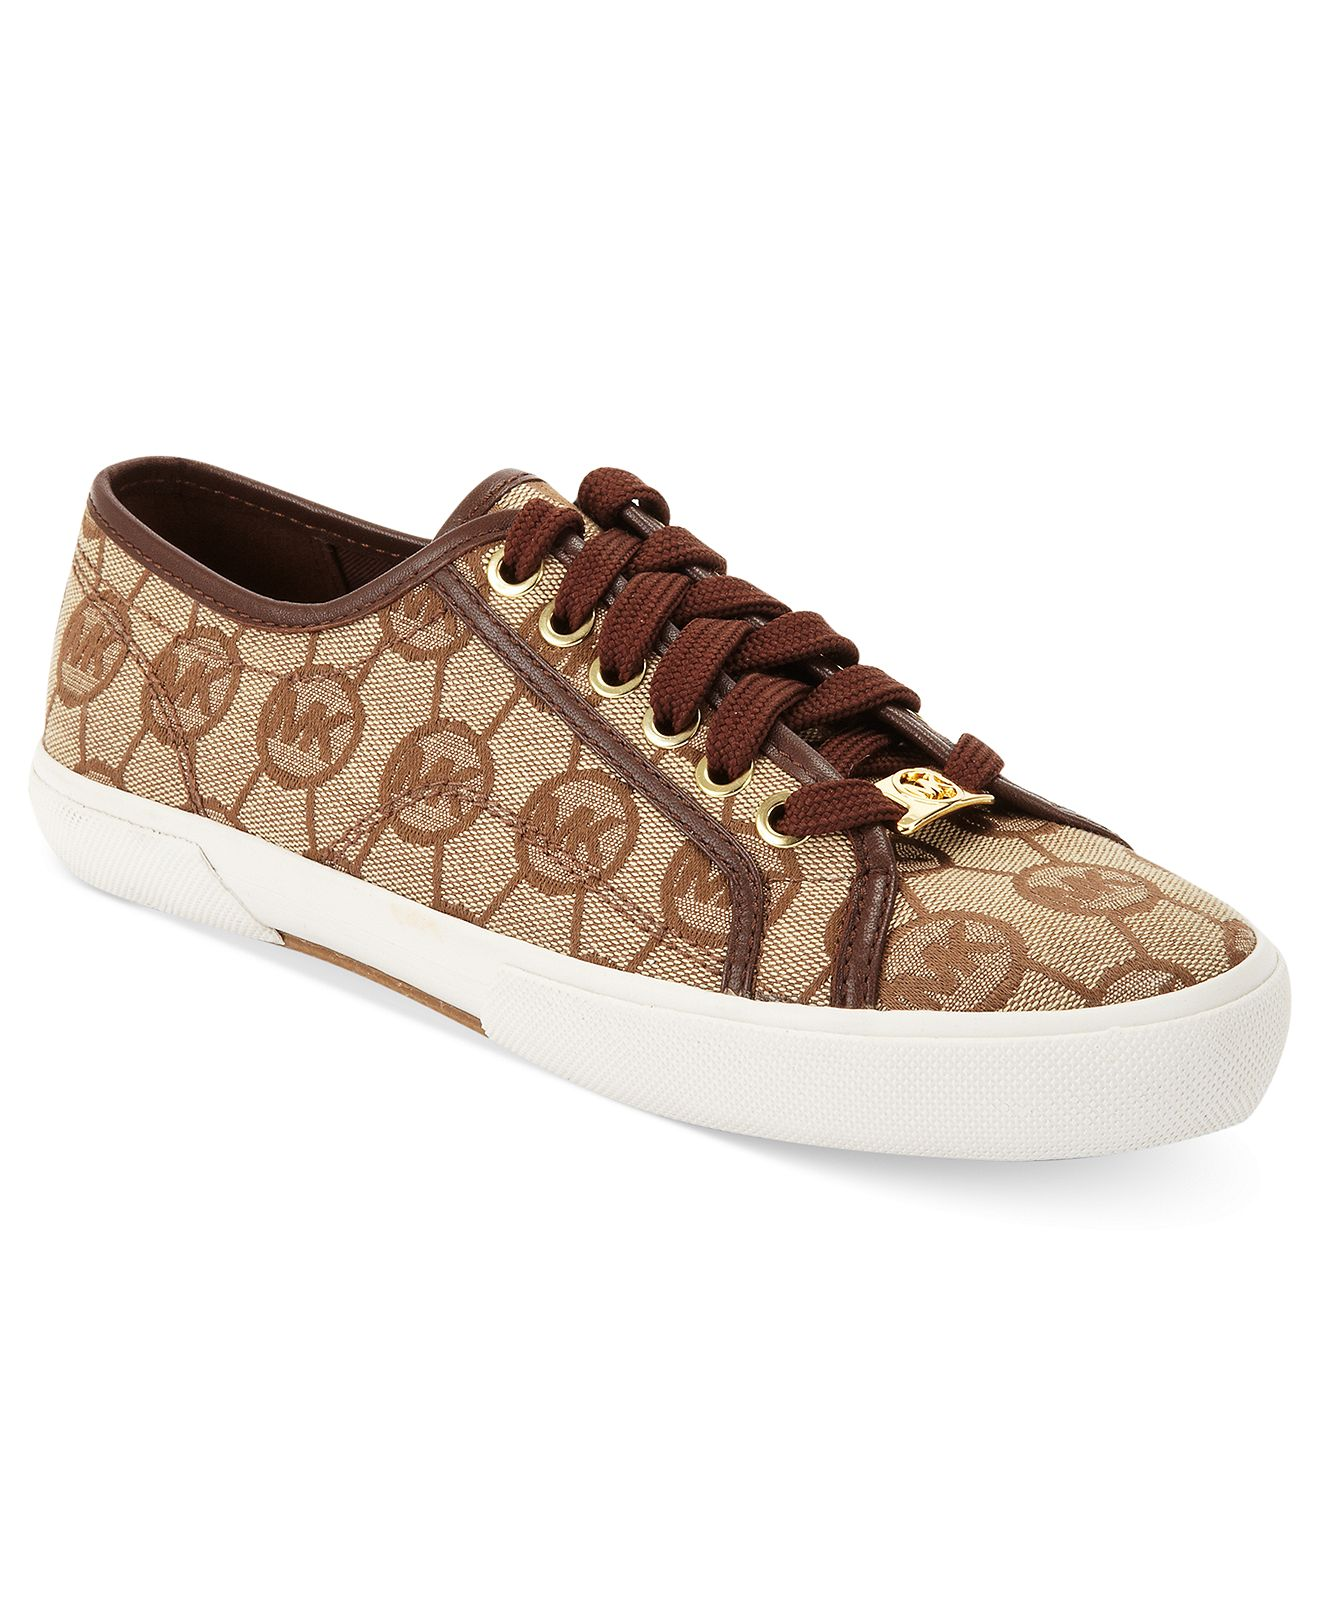 Michael Kors shoes are as low as $ at Macy's! Keep in mind that these shoes are.